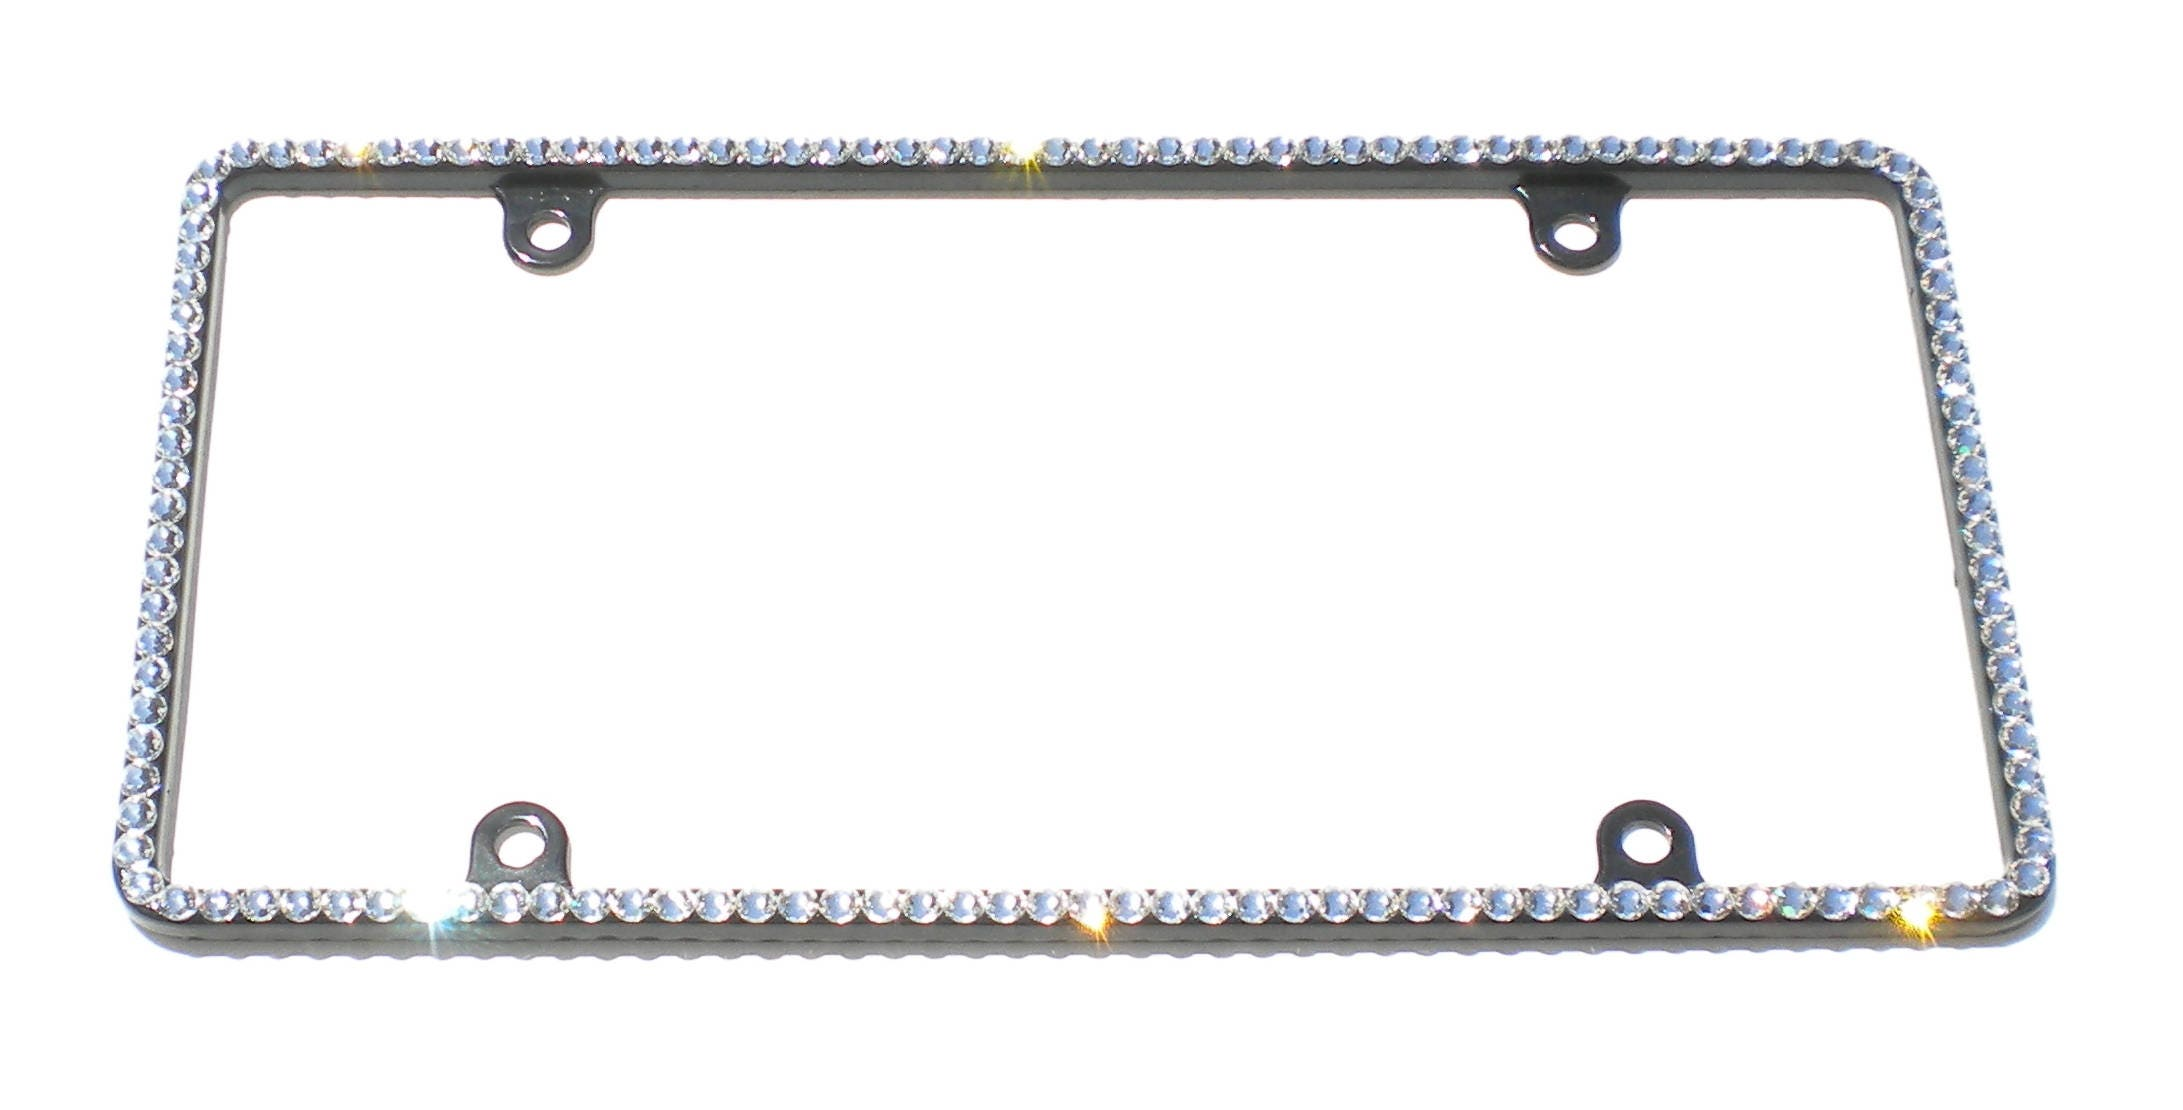 Thin CRYSTAL Bling License Plate Black Frame made with